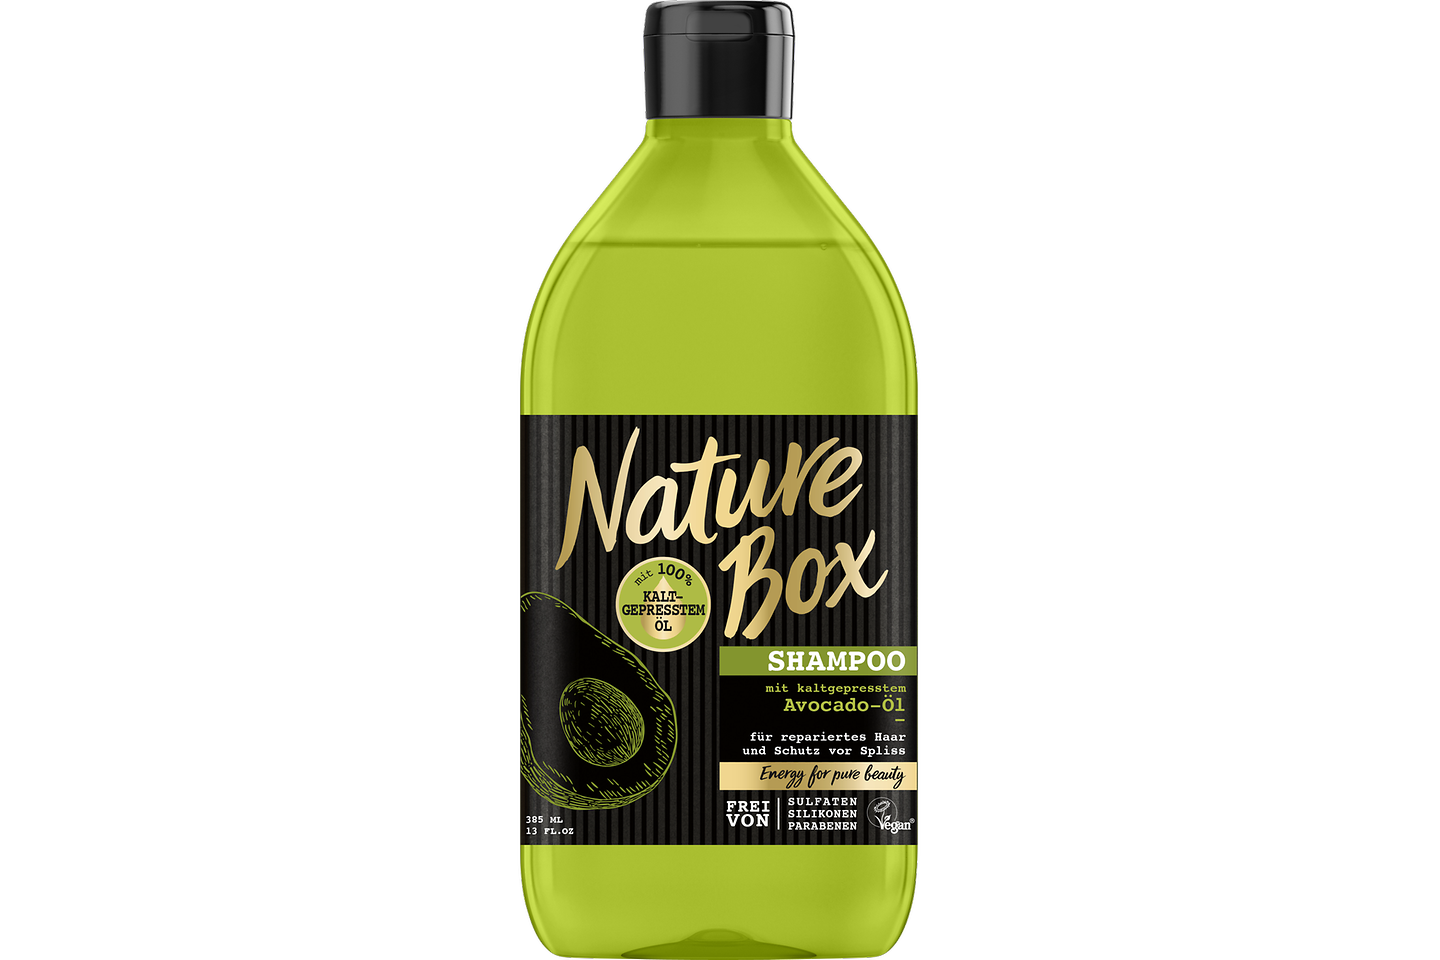 Nature Box Shampoo Avocado